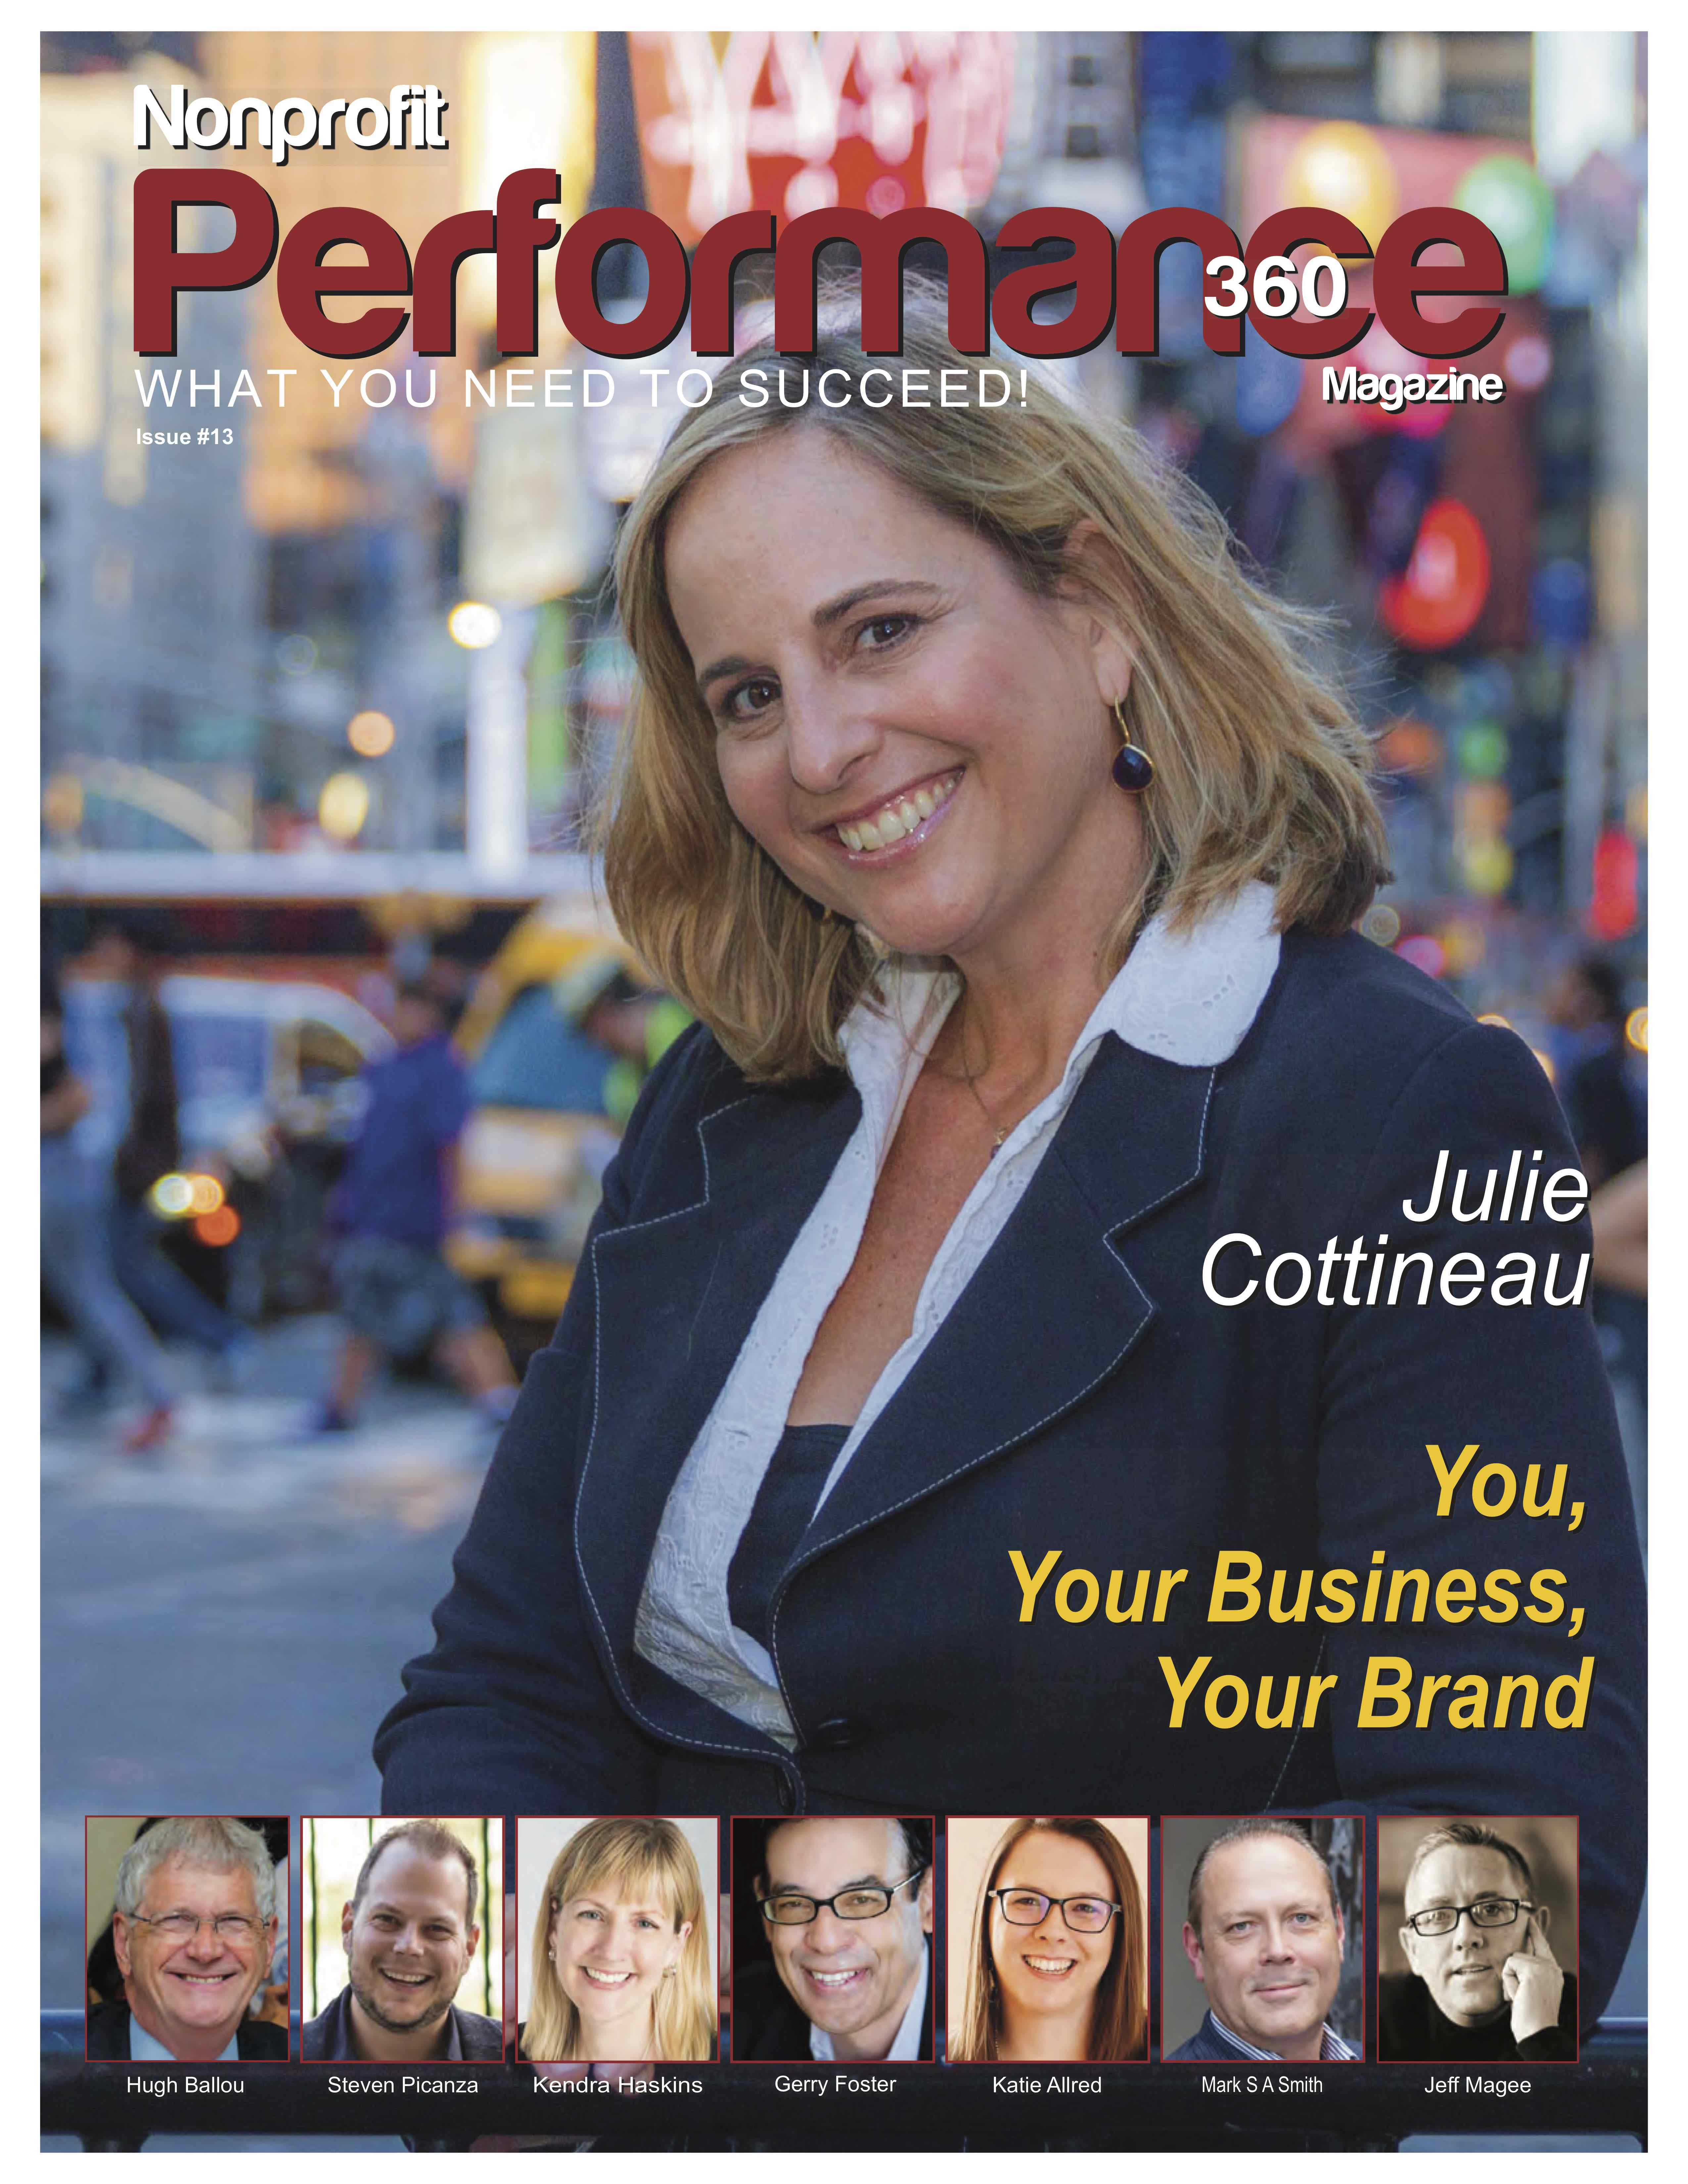 Nonprofit Professional Performance 360 - Issue #13